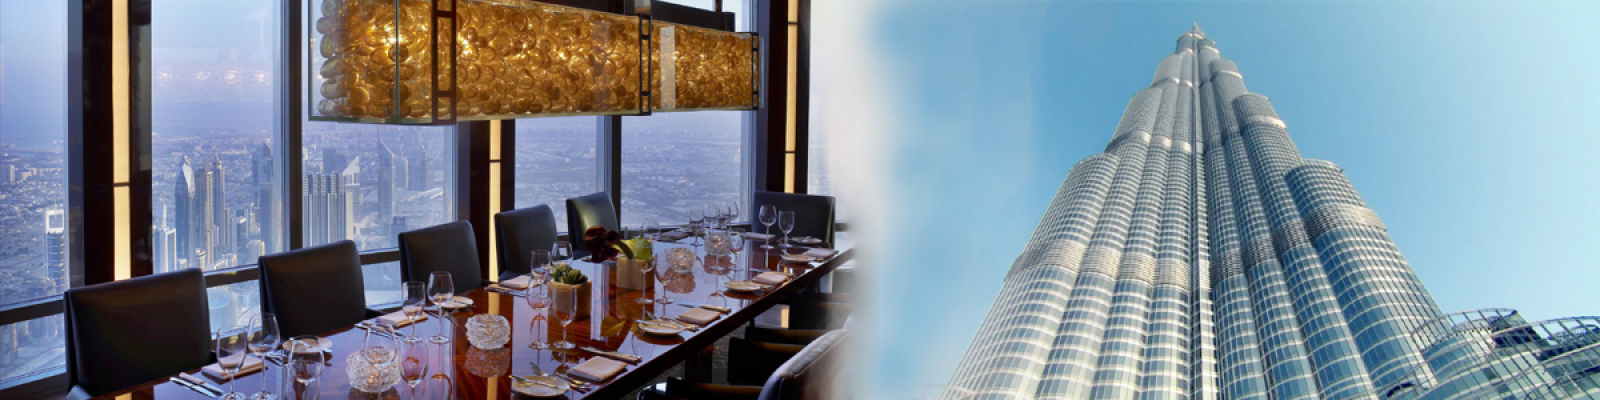 burj khalifa tour, burj khalifa trip, burj khalifa tour price, burj khalifa tour package, burj khalifa lunch